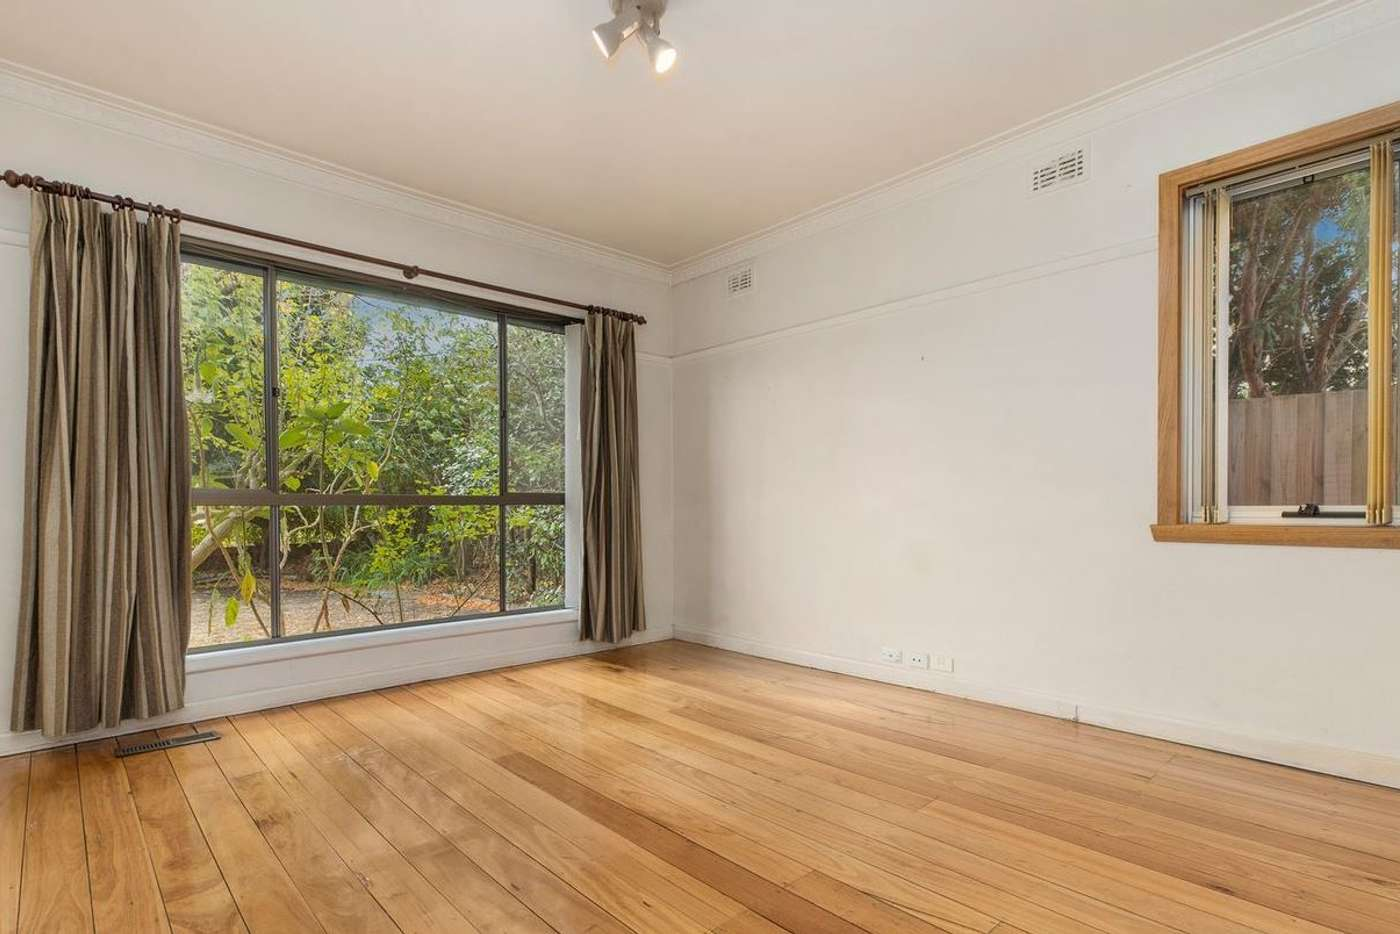 Fifth view of Homely house listing, 54 Liston Street, Glen Iris VIC 3146